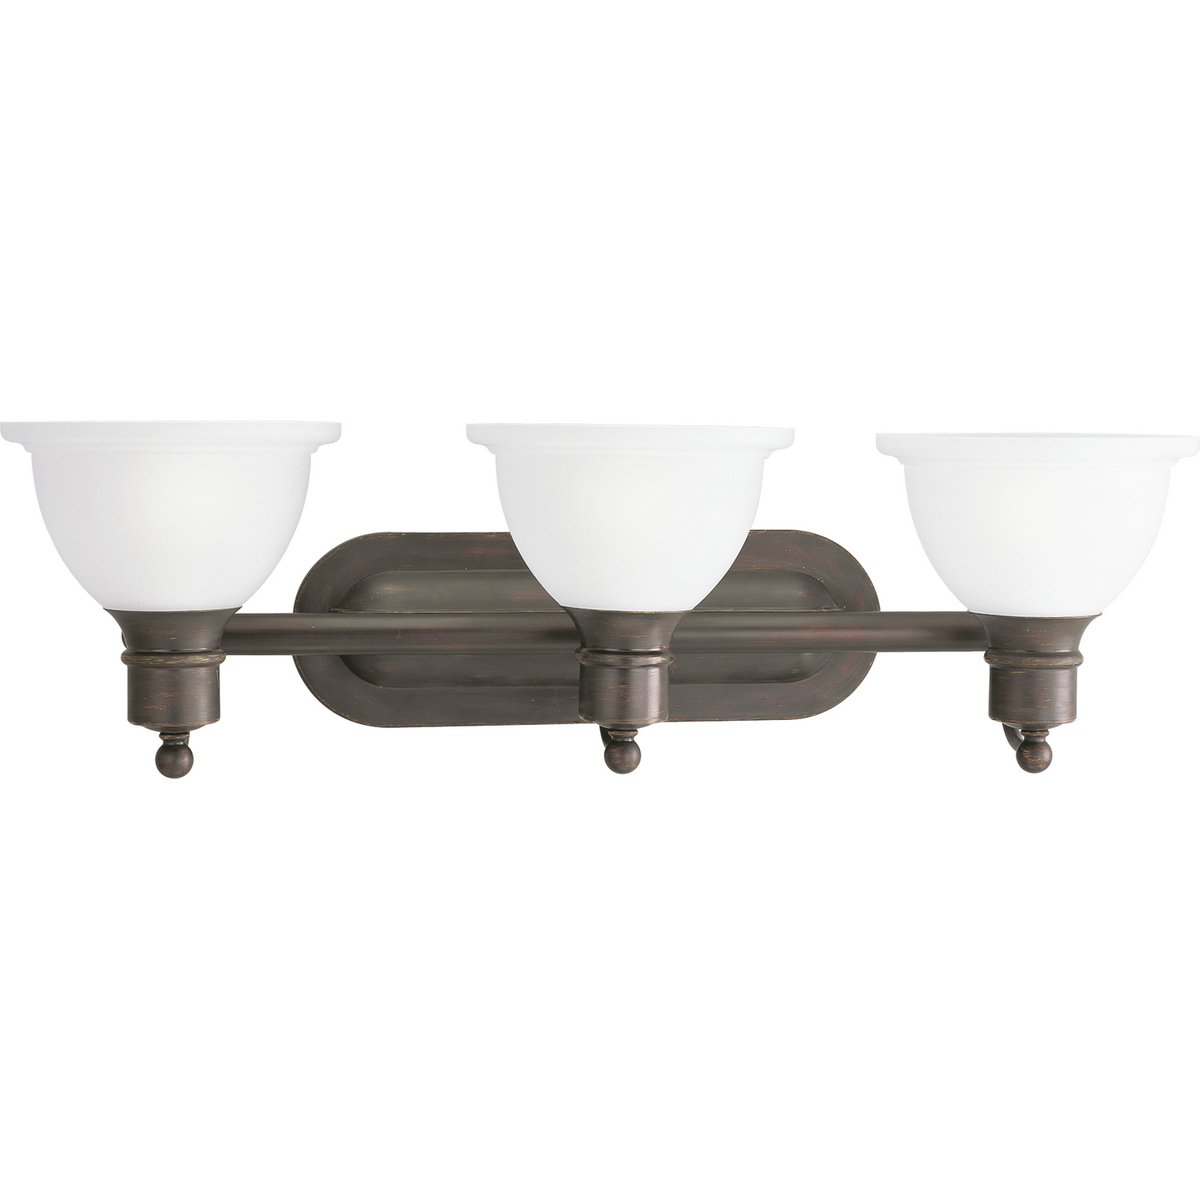 PRO P3163-20 Three Light Antique Bronze Etched Glass Vanity 3X100M